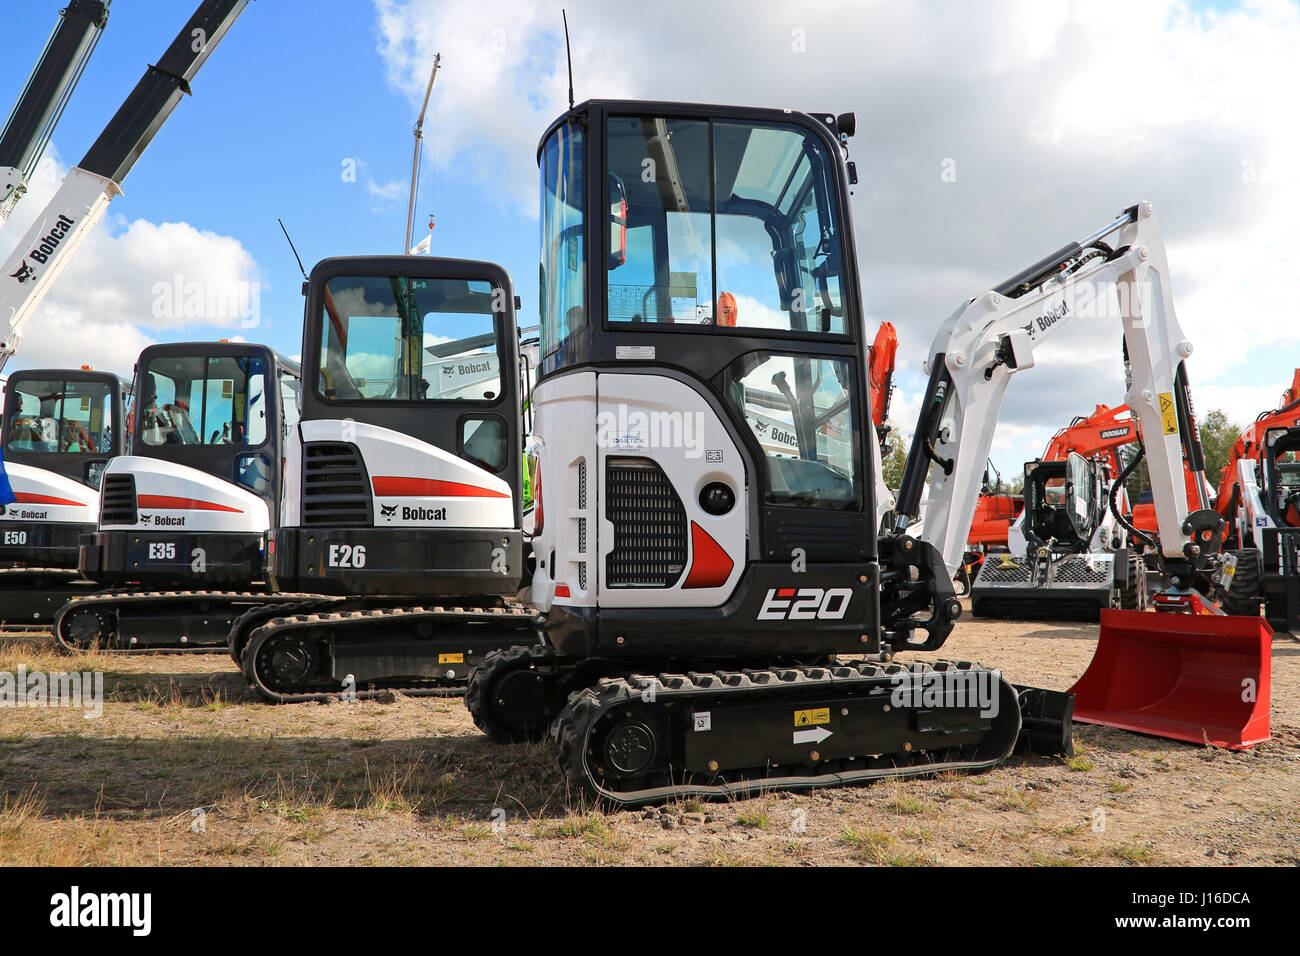 HYVINKAA, FINLAND - SEPTEMBER 11, 2015: Lineup of Bobcat compact excavators with E20 on the front on display at - Stock Image